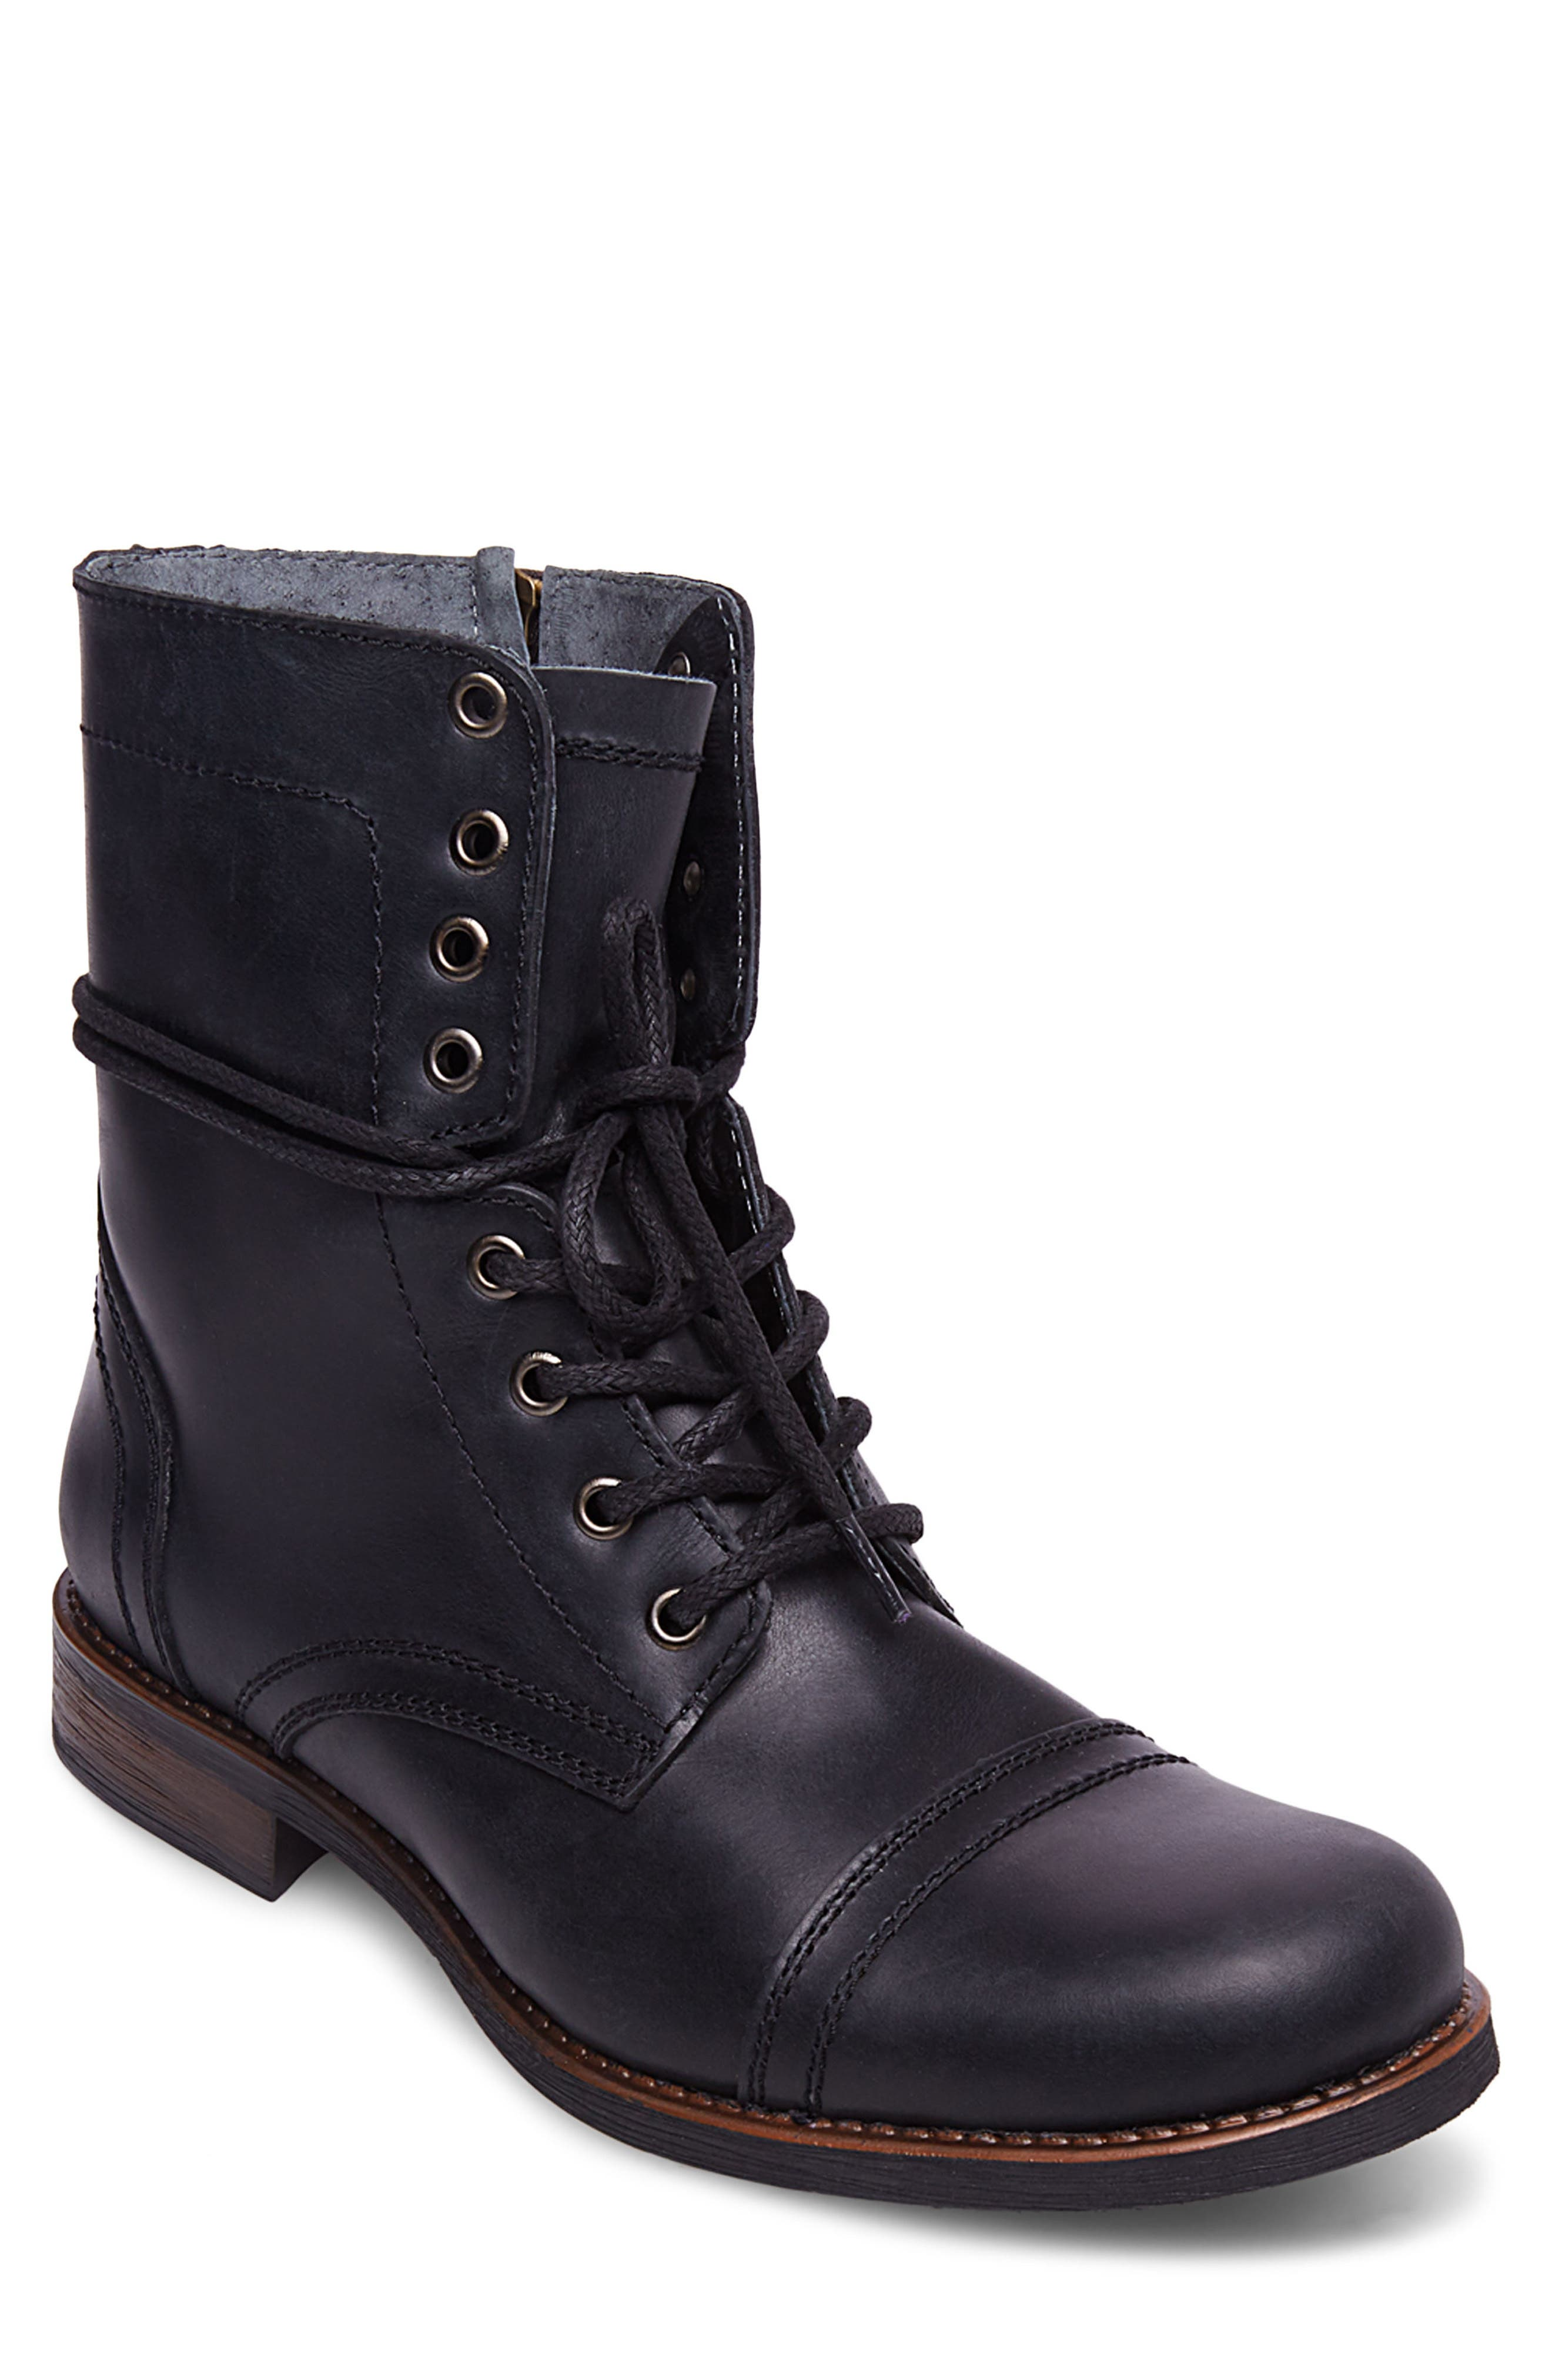 Troopah-C Cap Toe Boot,                             Main thumbnail 1, color,                             BLACK LEATHER